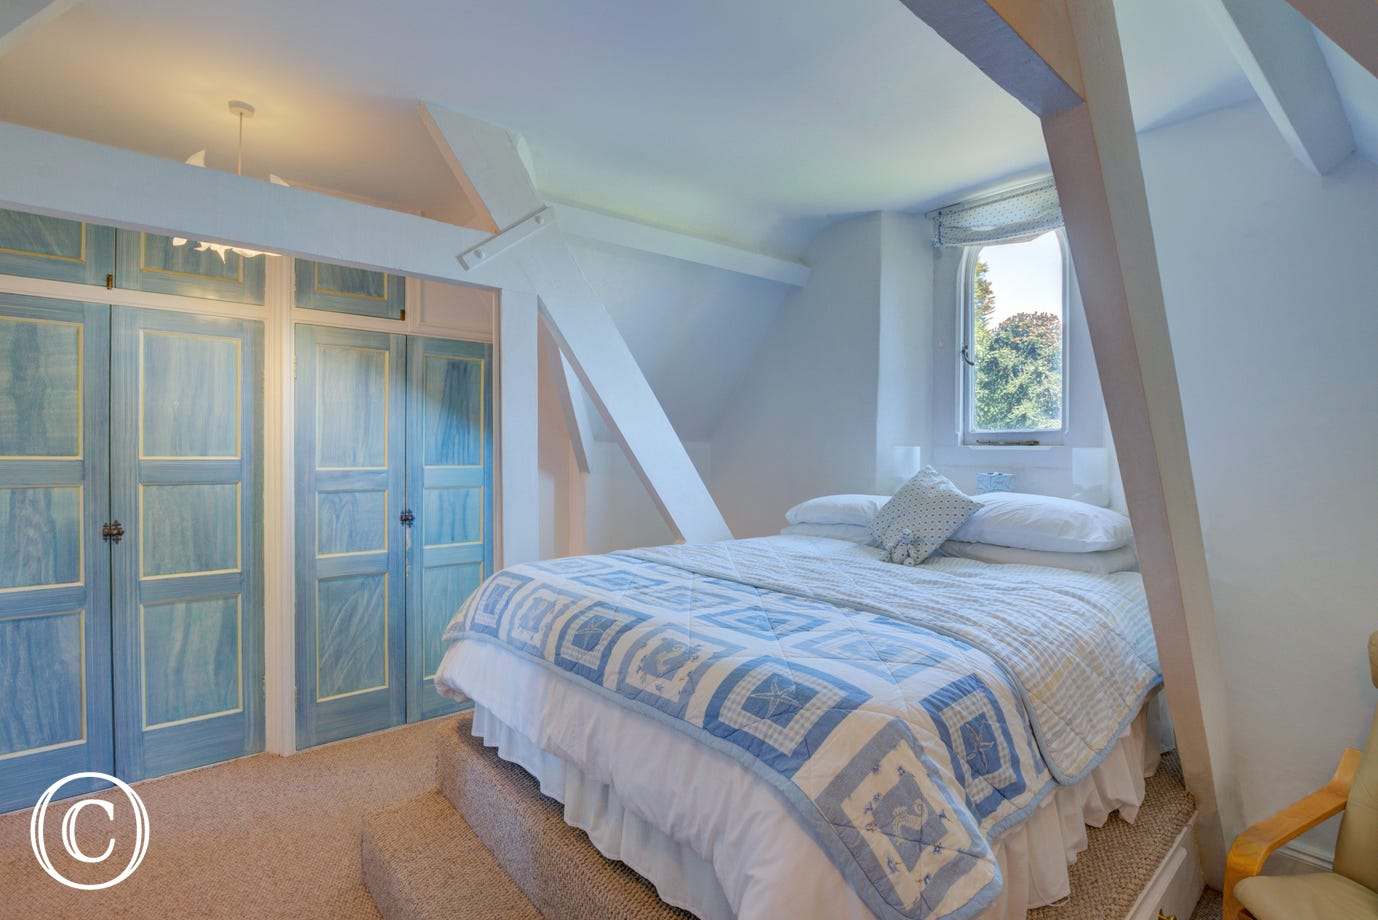 Bedroom One is furnished with a raised double bed, built in wardrobes and a chest of drawers.  There is a sloping ceiling and exposed beams.  A gothic window offers countryside views.